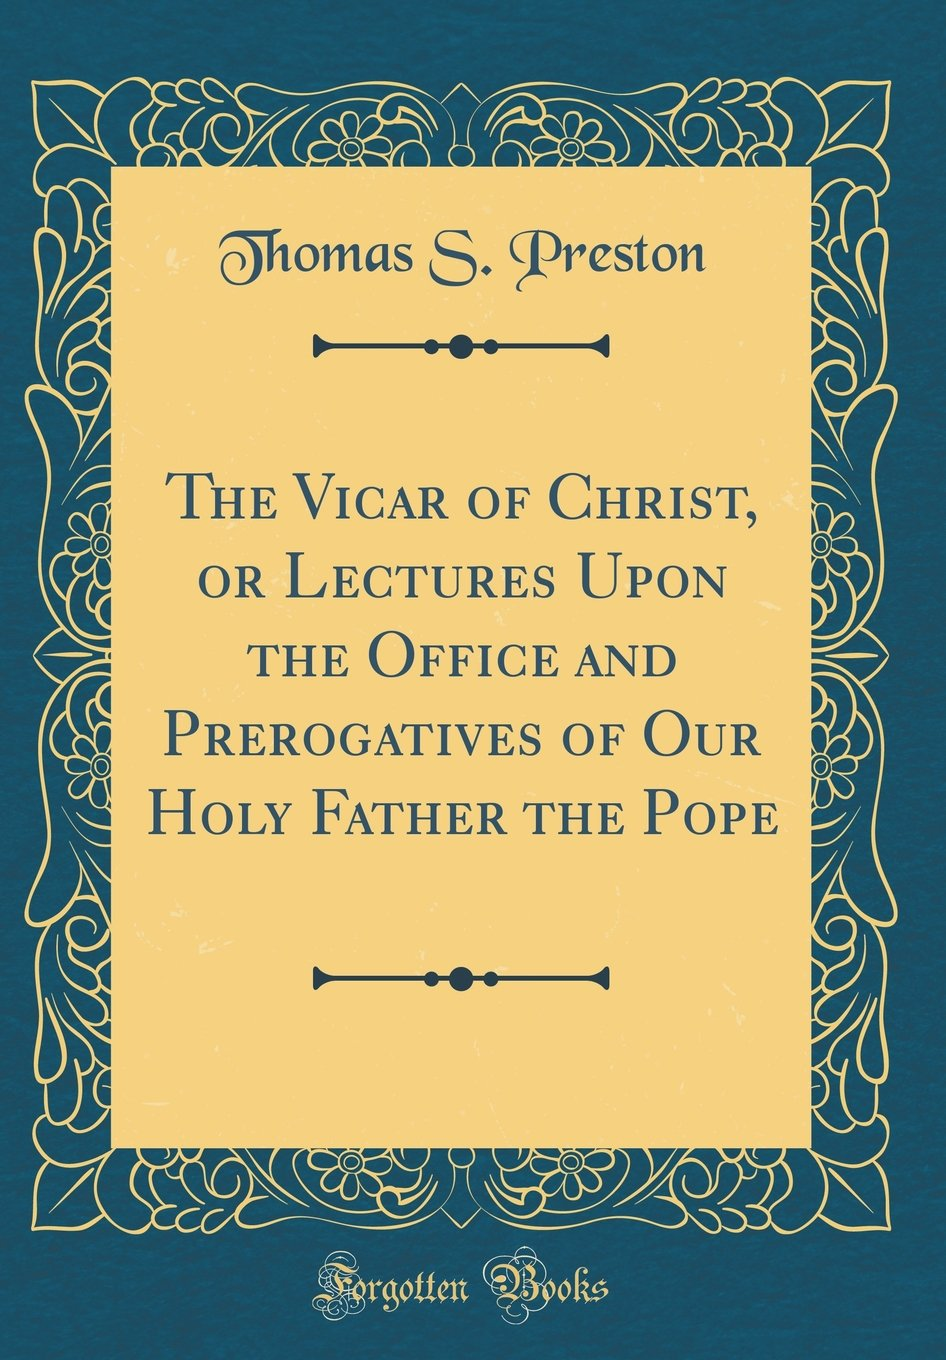 Download The Vicar of Christ, or Lectures Upon the Office and Prerogatives of Our Holy Father the Pope (Classic Reprint) ebook